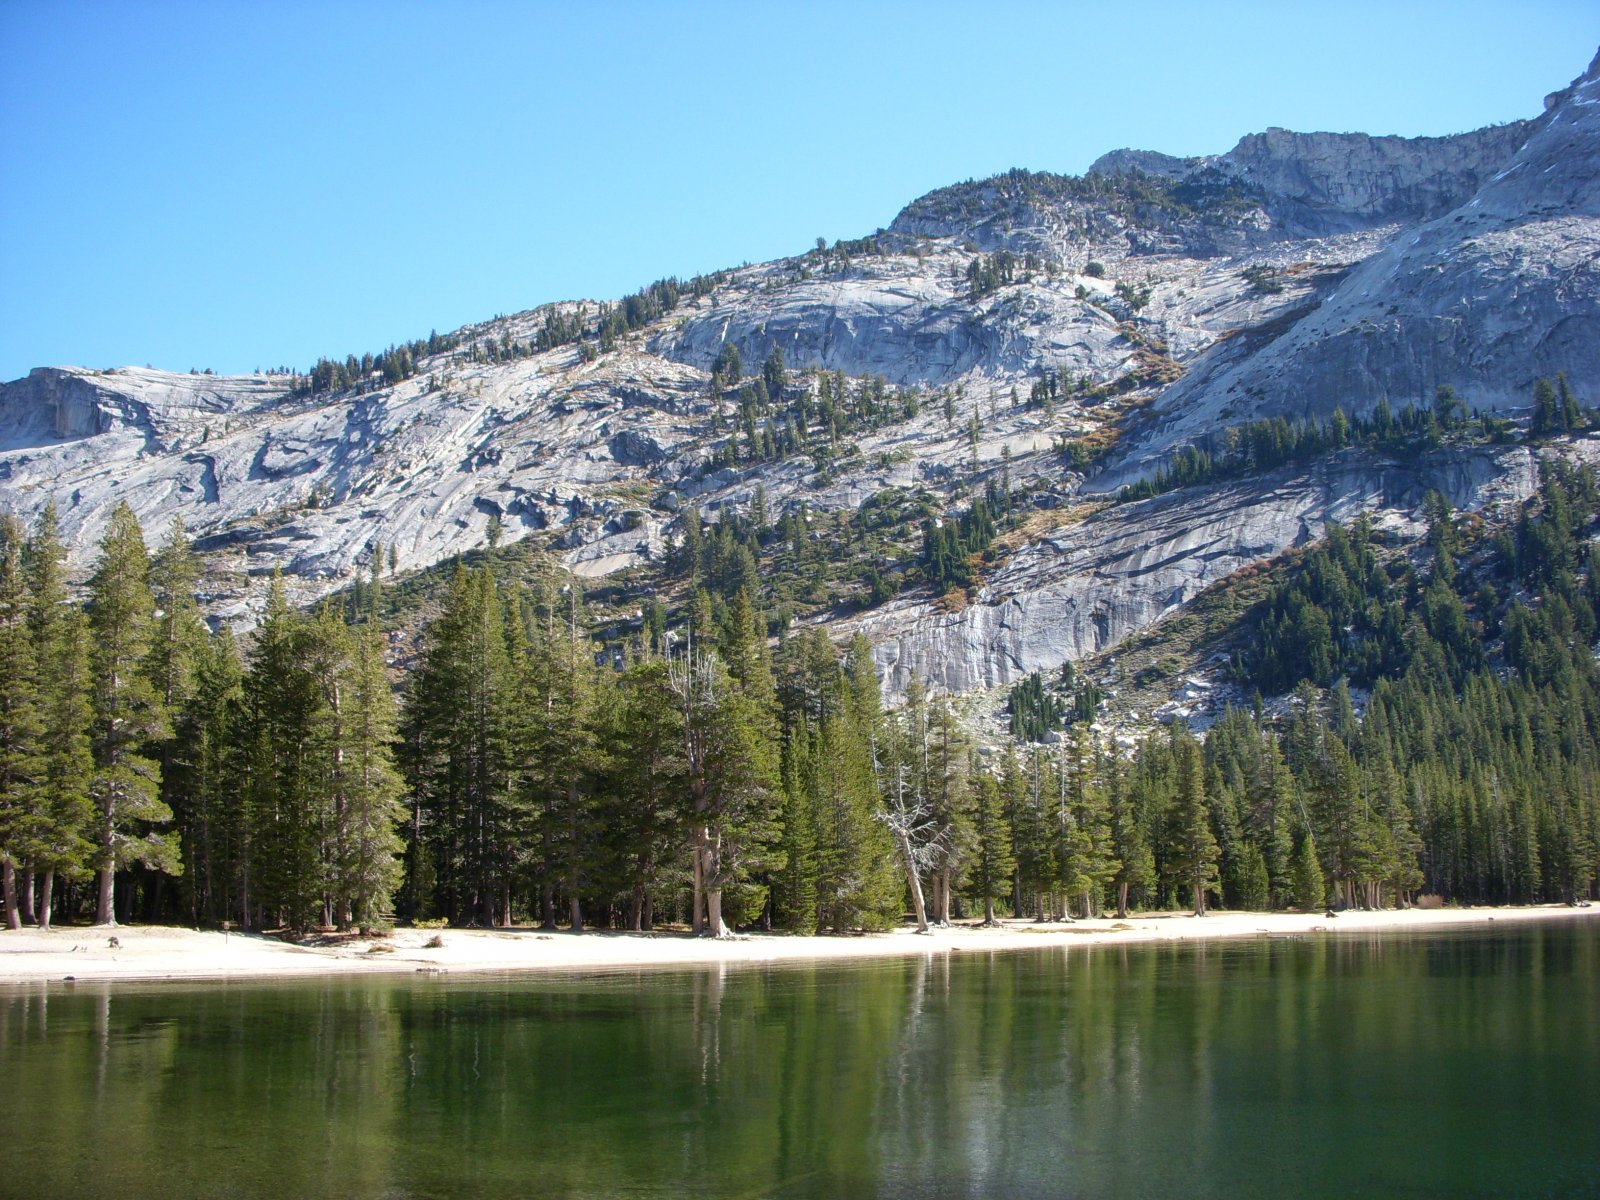 Click image for larger version  Name:Yosemite Oct2011 1792.jpg Views:75 Size:470.3 KB ID:144373